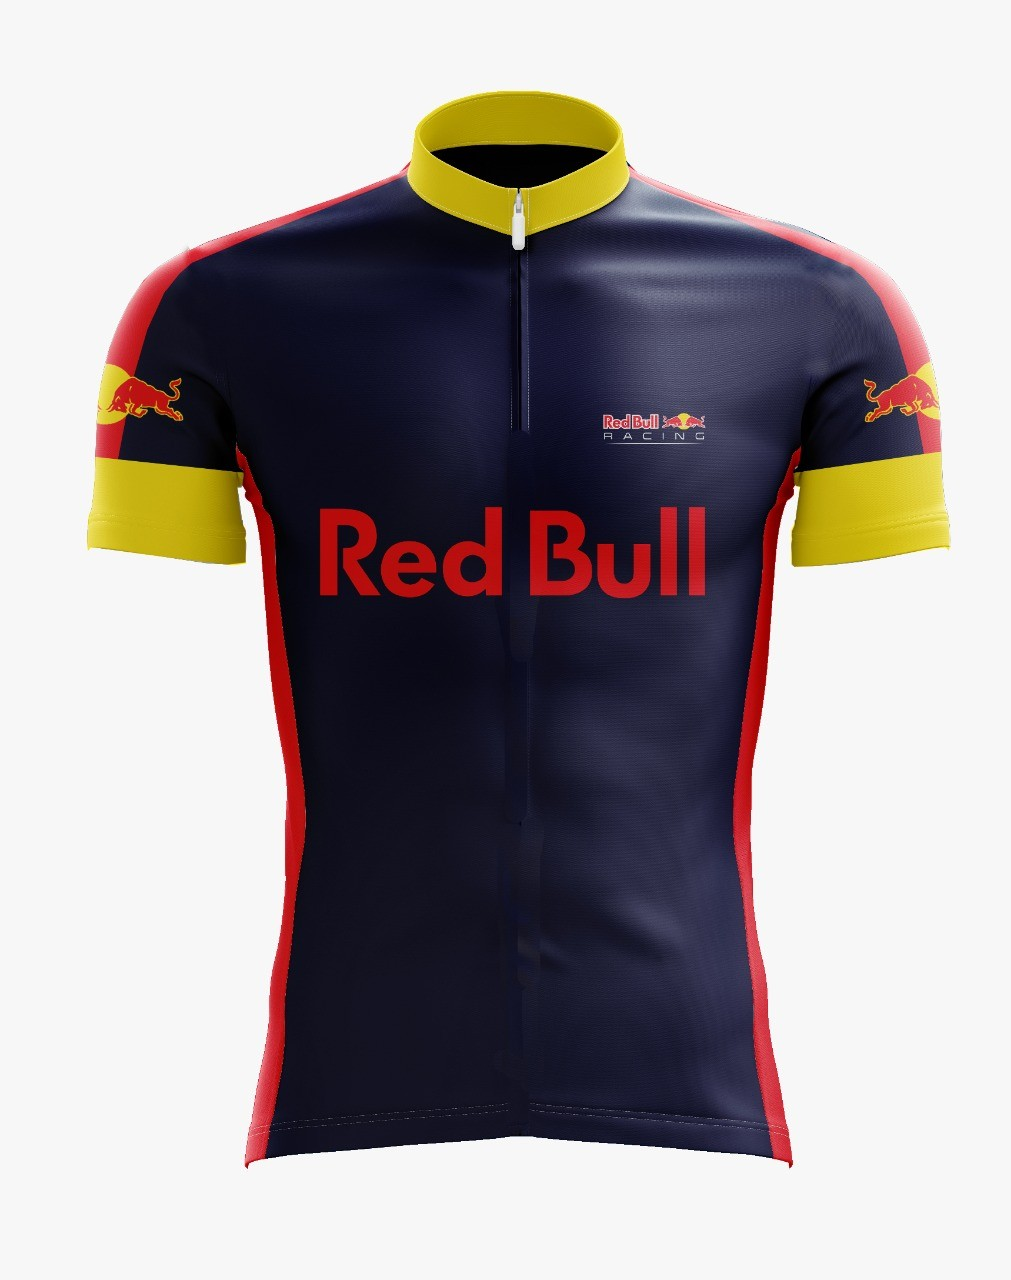 Camisa Ciclismo Red bull 2021